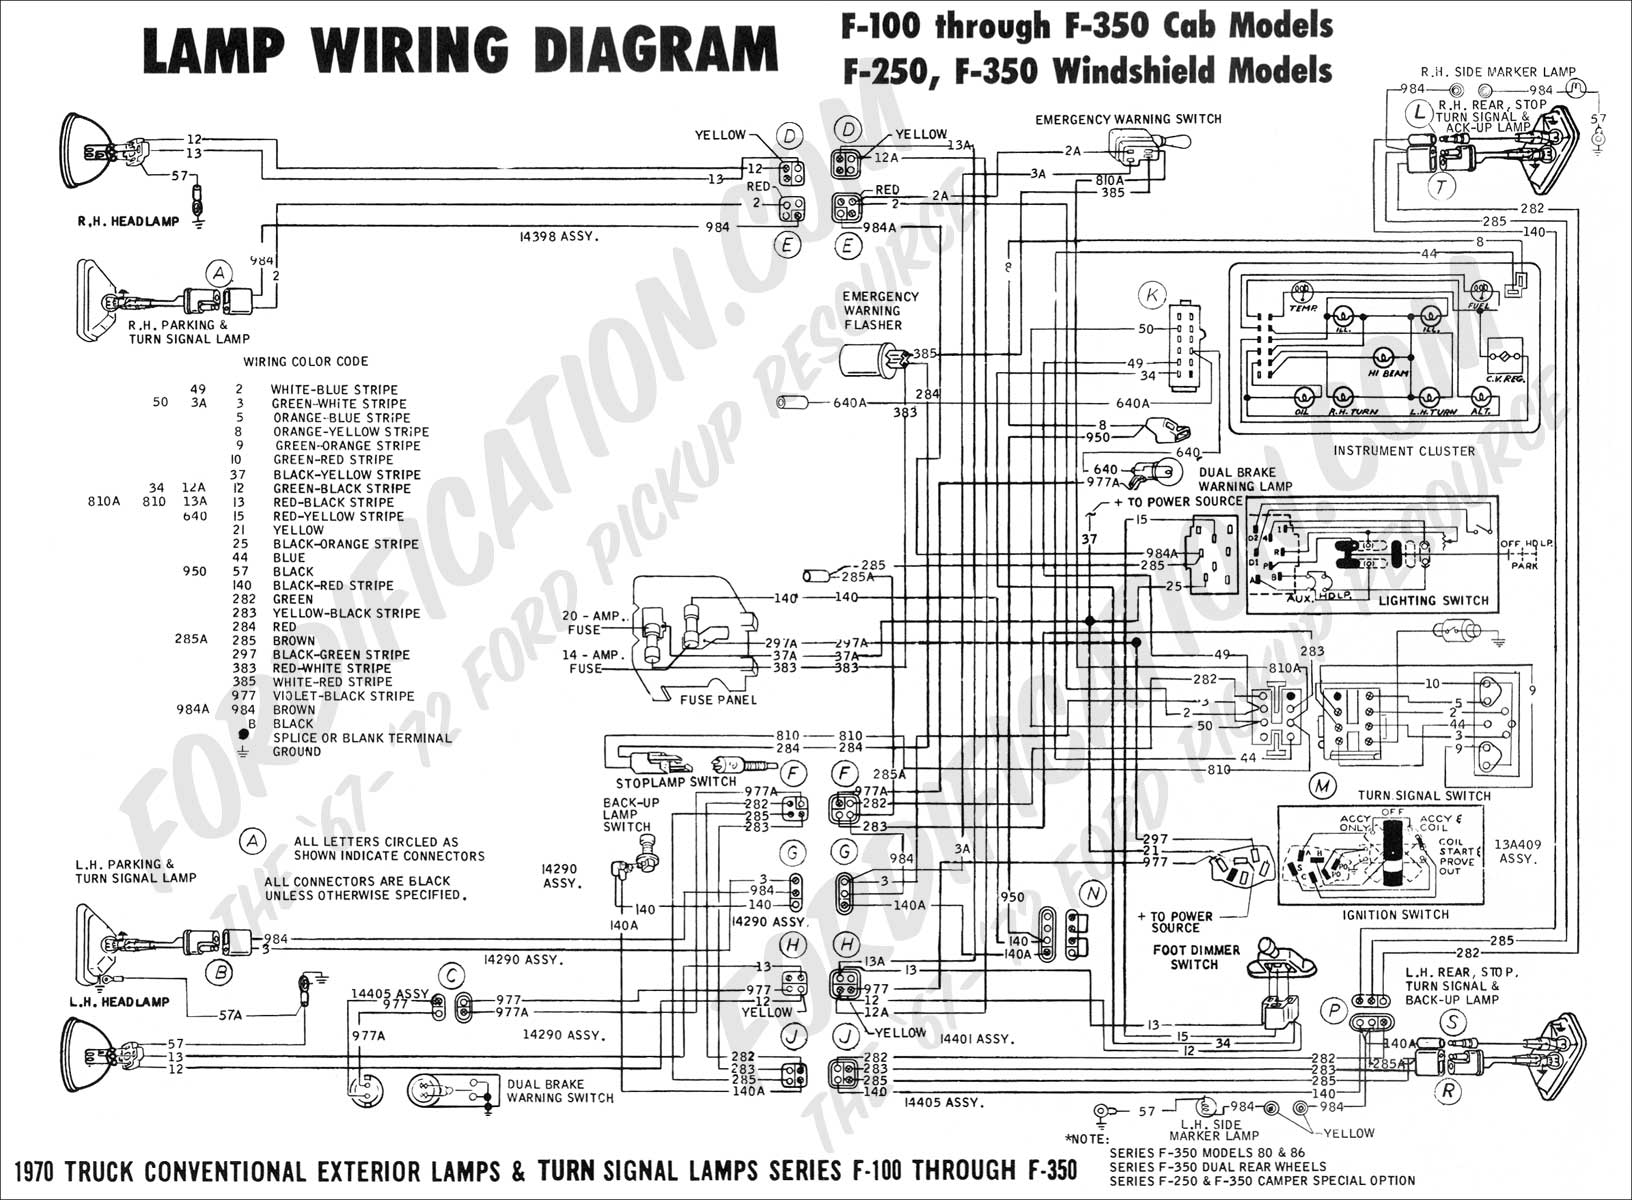 1997 p30 wiring diagram 1997 wiring diagrams online 1997 e350 wiring diagram 1997 wiring diagrams